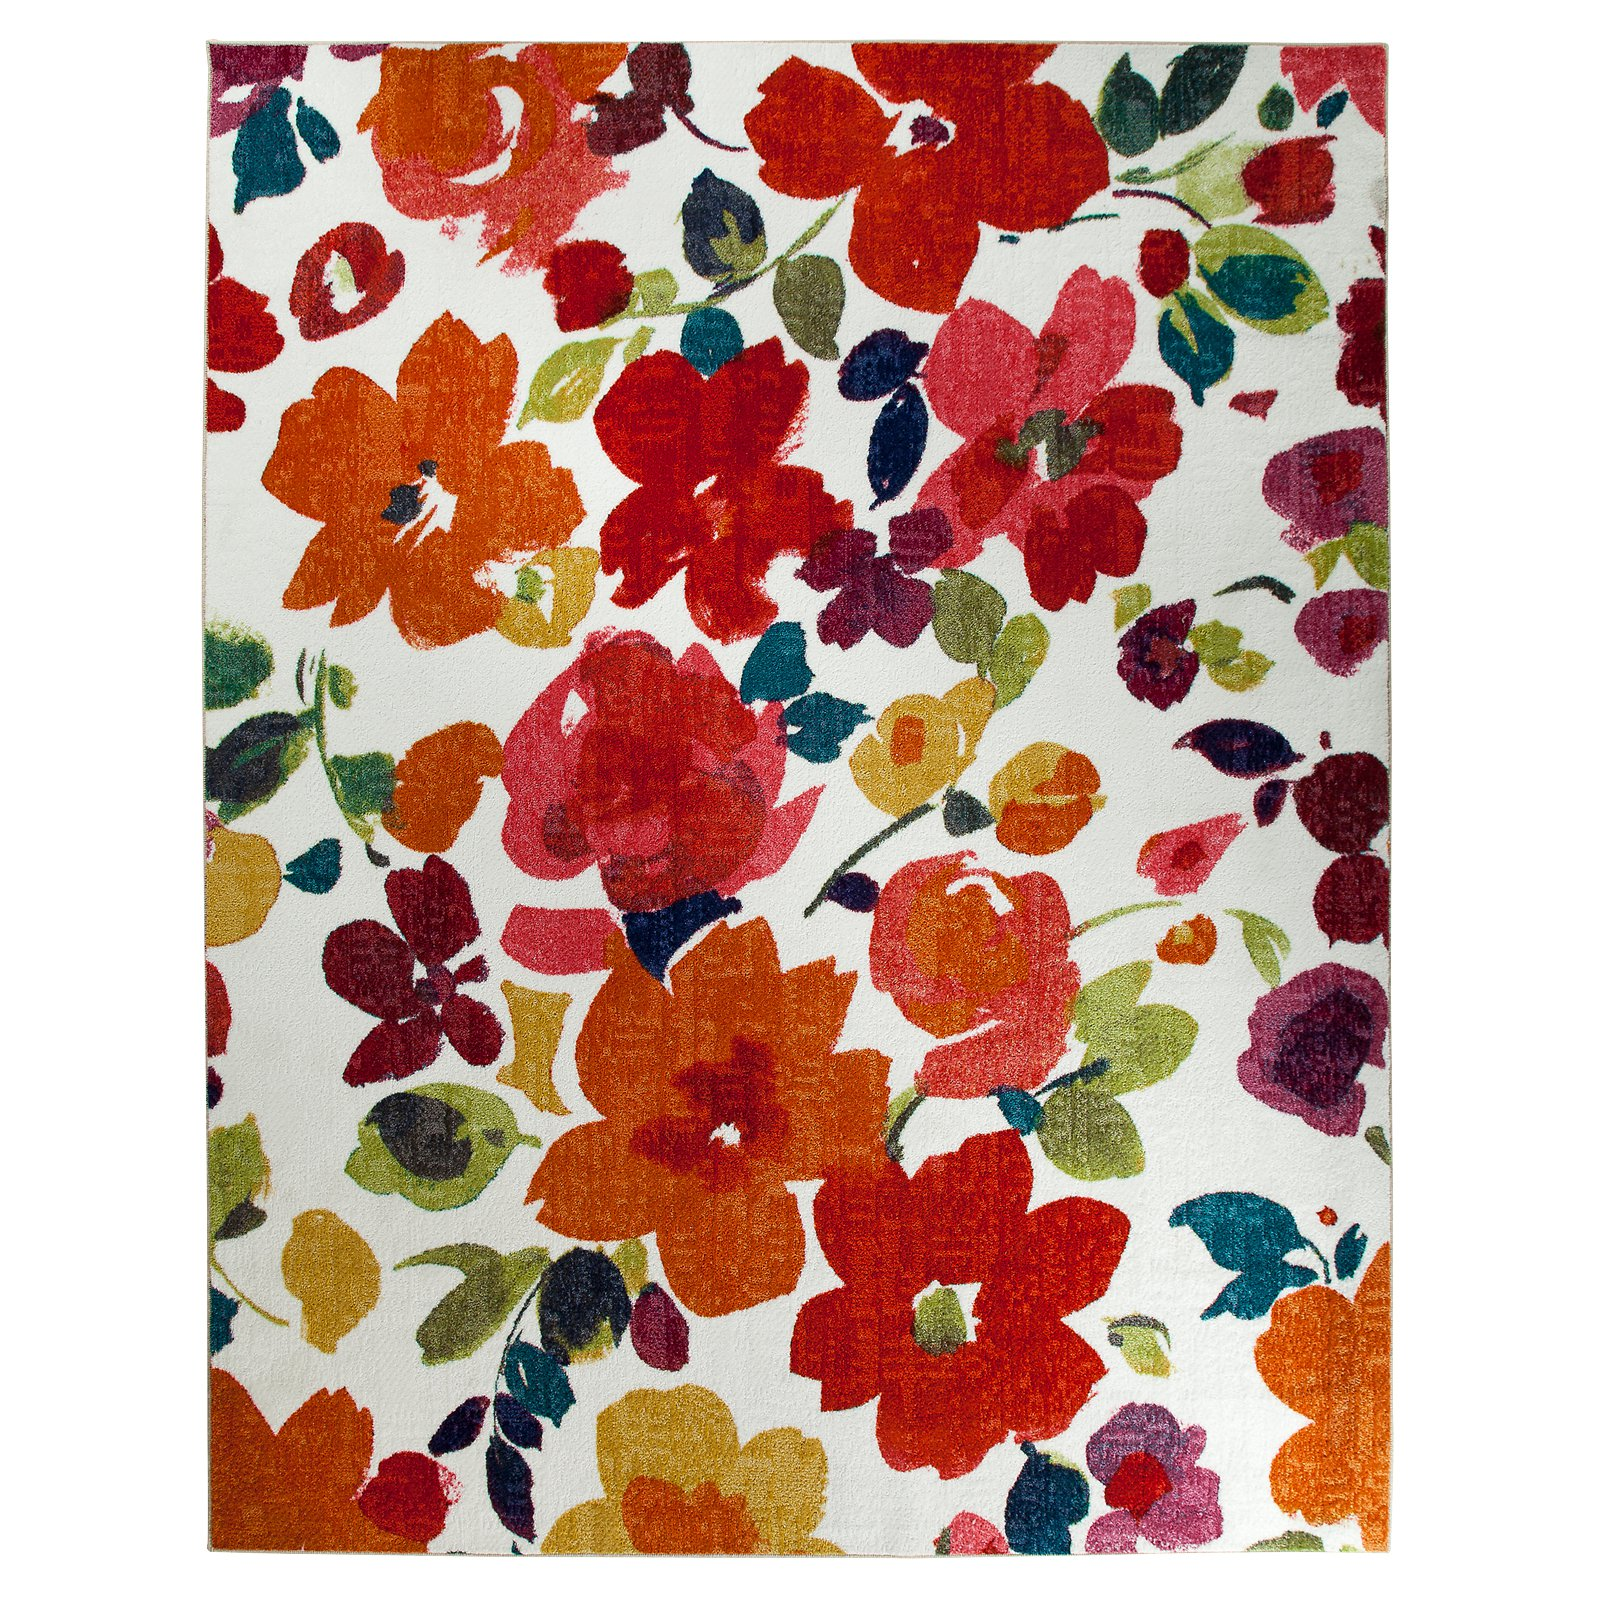 Mohawk Bright Floral Toss Multi Rug